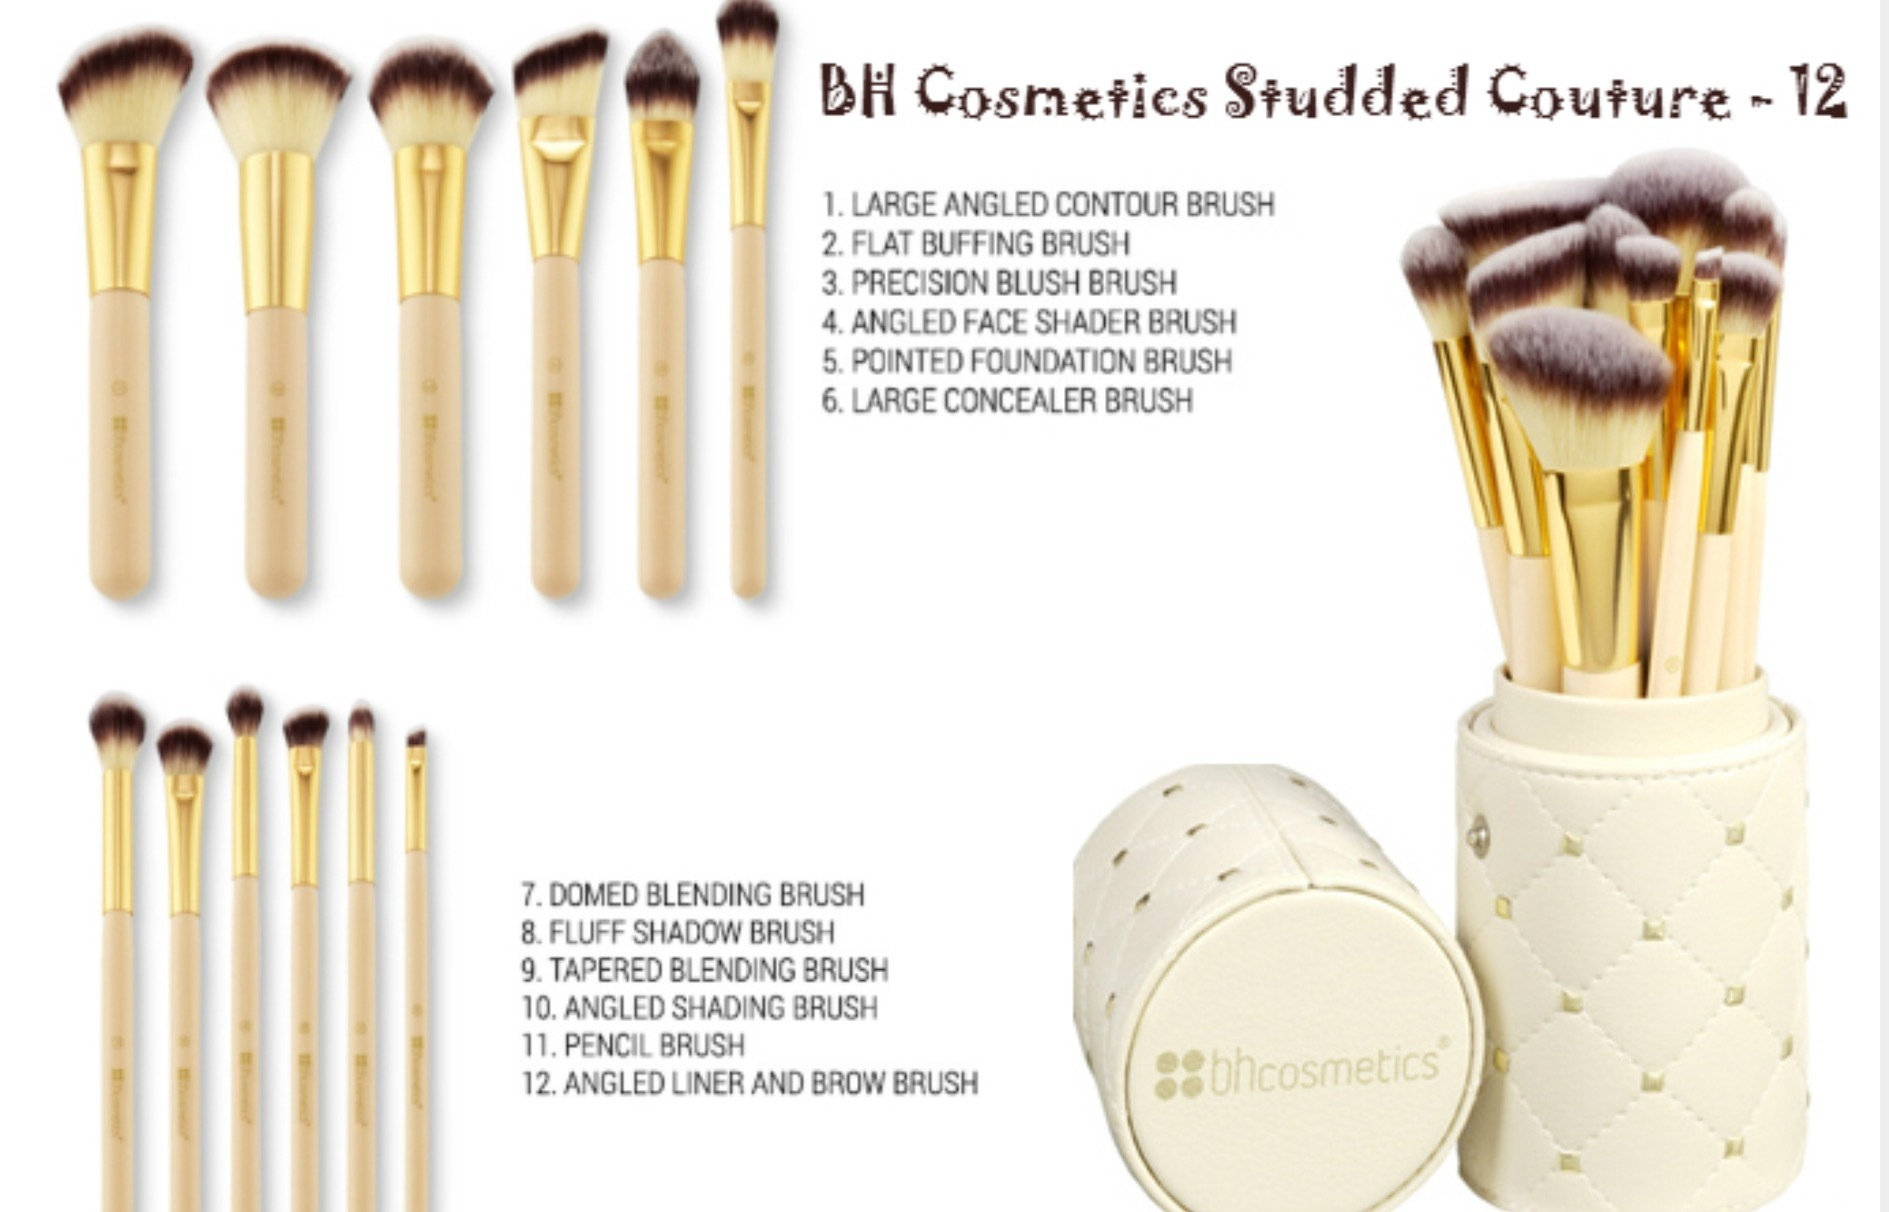 Bh Cosmetics☆12本ブラシセット Studded Couture